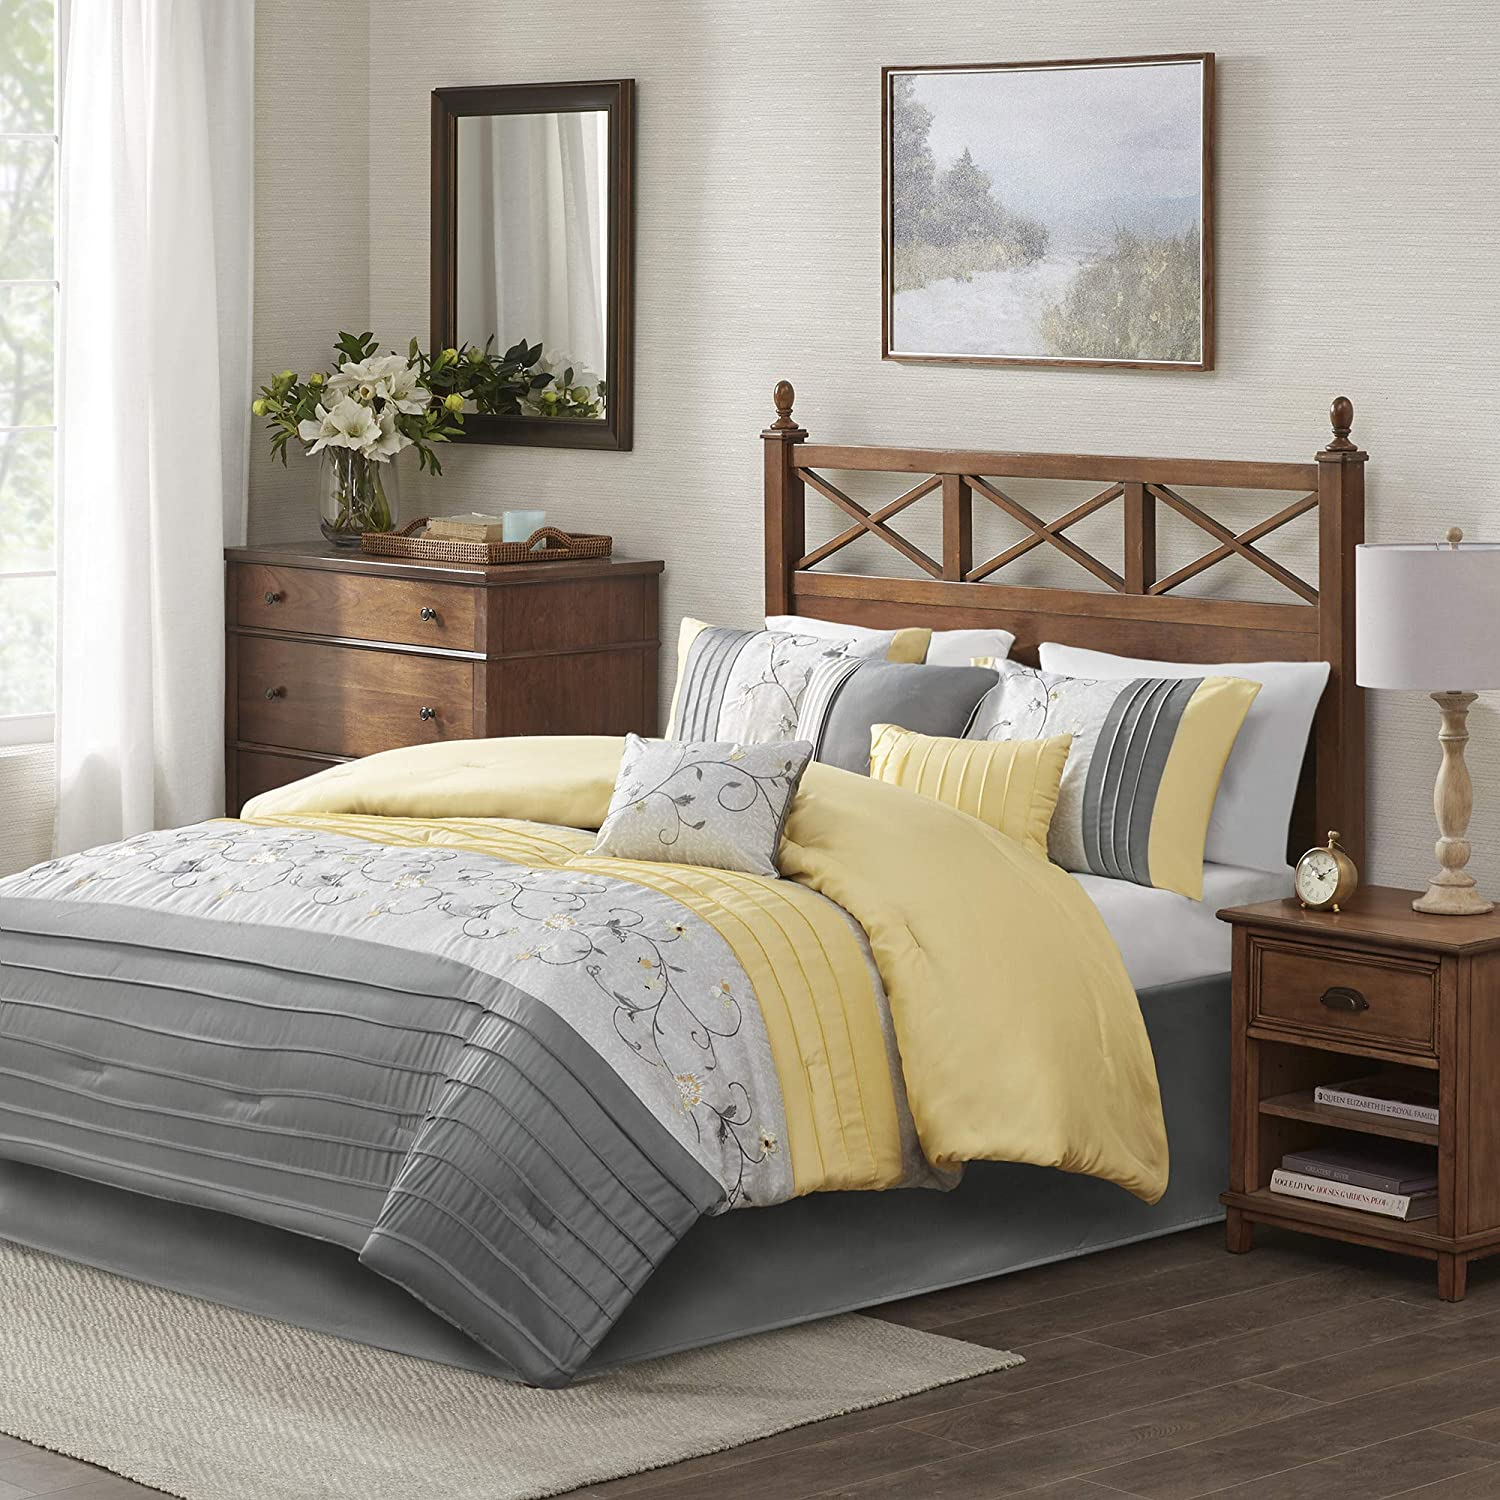 Madison Park Serene Comforter Reversible Solid Faux Silk Floral Flower Embroidered Pleated Stripes Patchwork Soft Down Alternative Hypoallergenic All Season Bedding-Set, King, Yellow